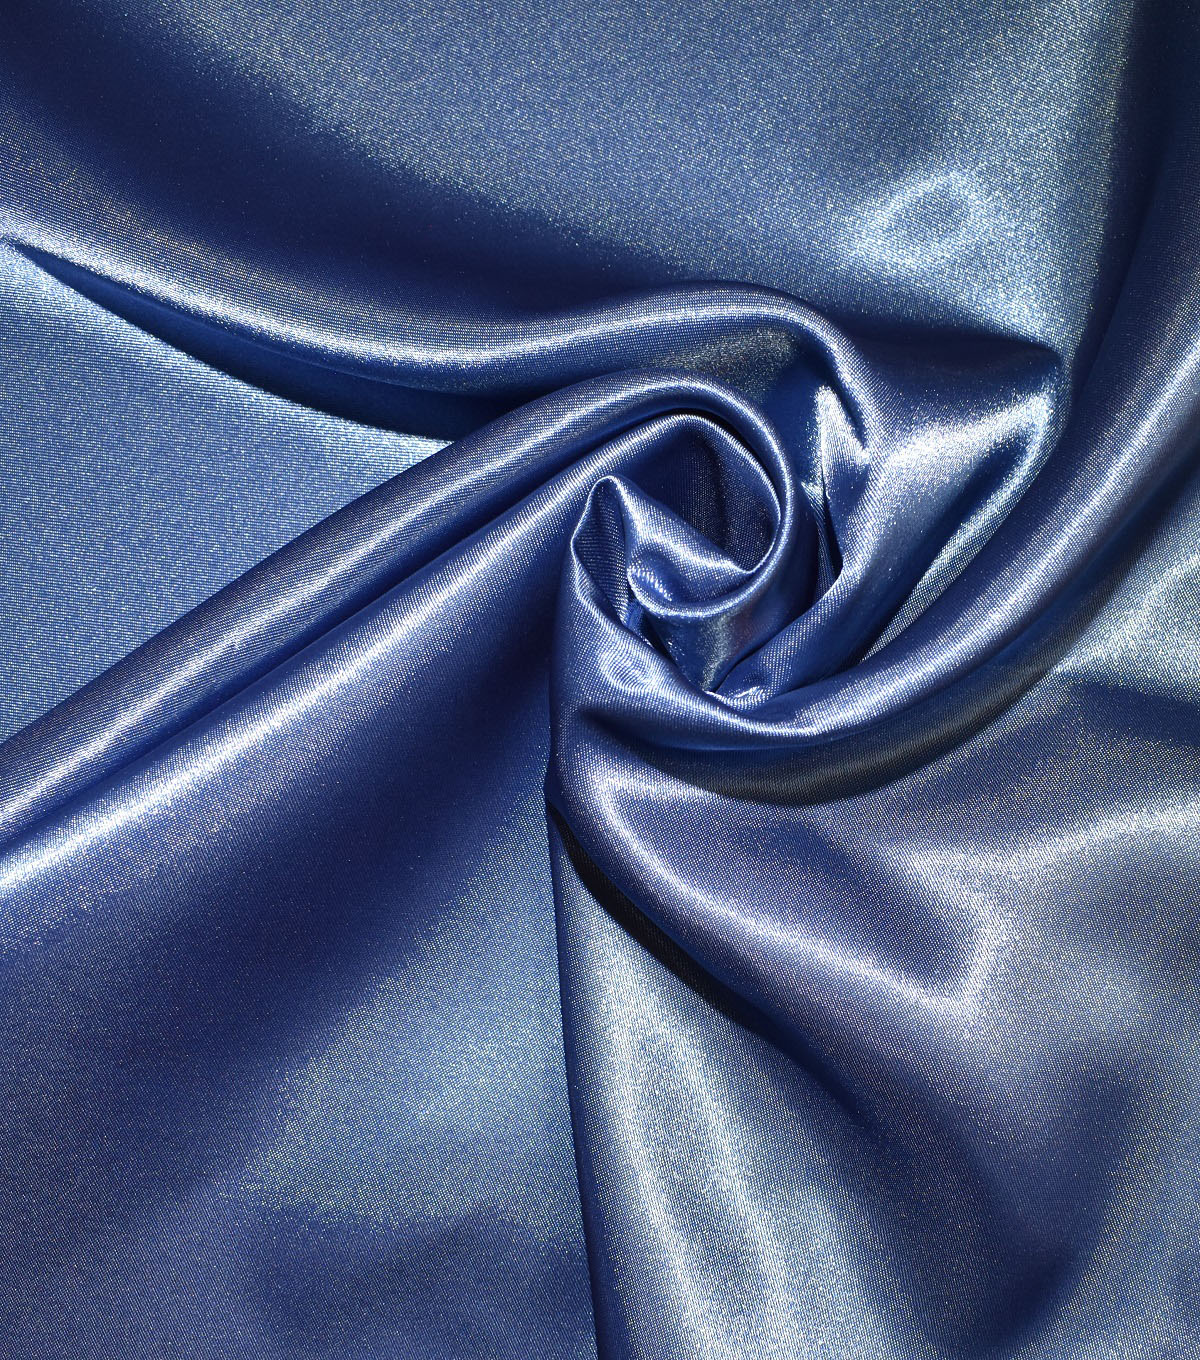 Casa Collection Shiny Satin Fabric, Moonlight Blue